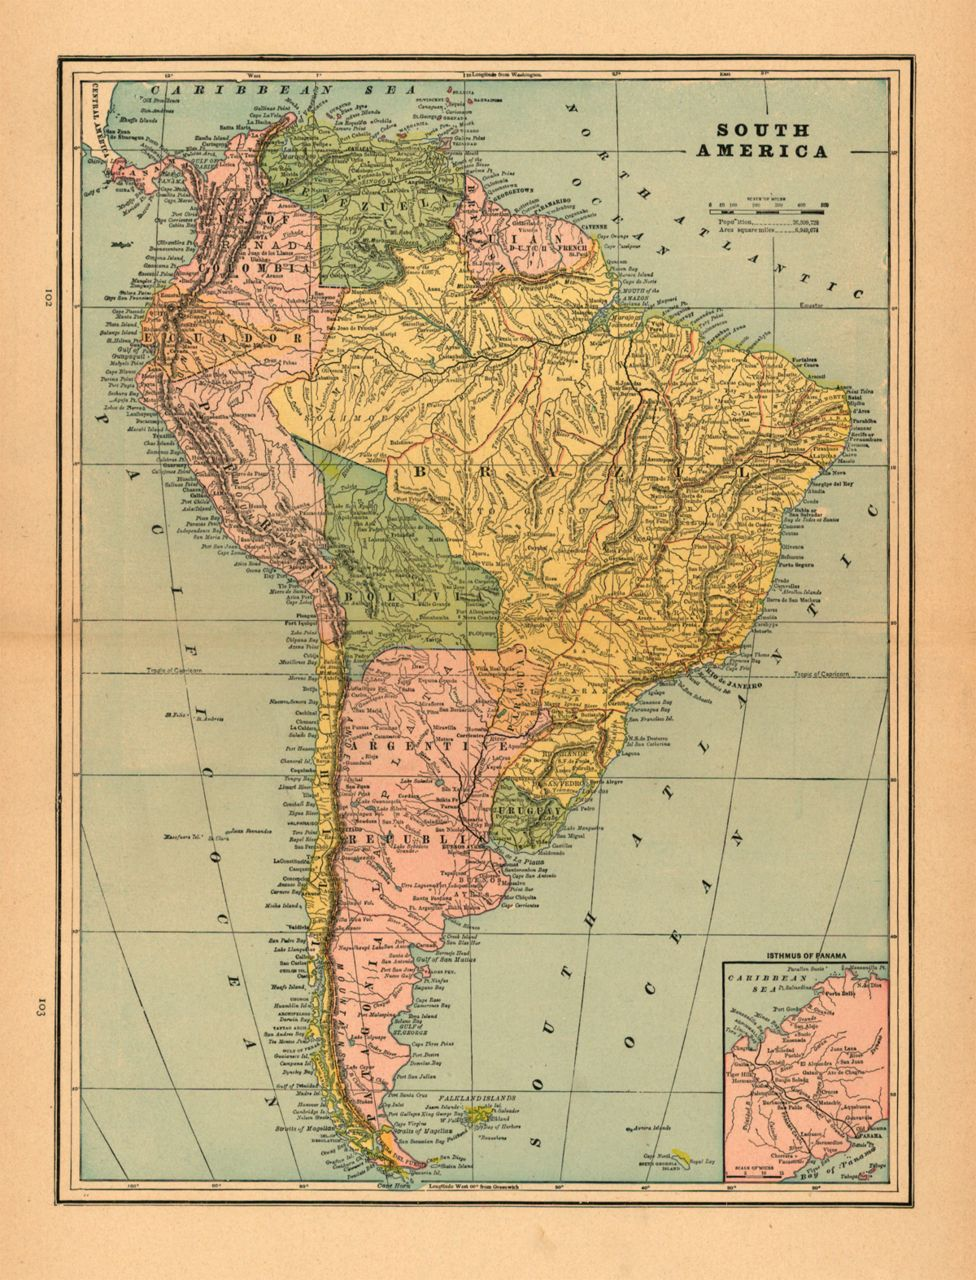 South America 1899 By George Cram Tumblr The Cartography Collective Old Maps Cartography Map Cartography